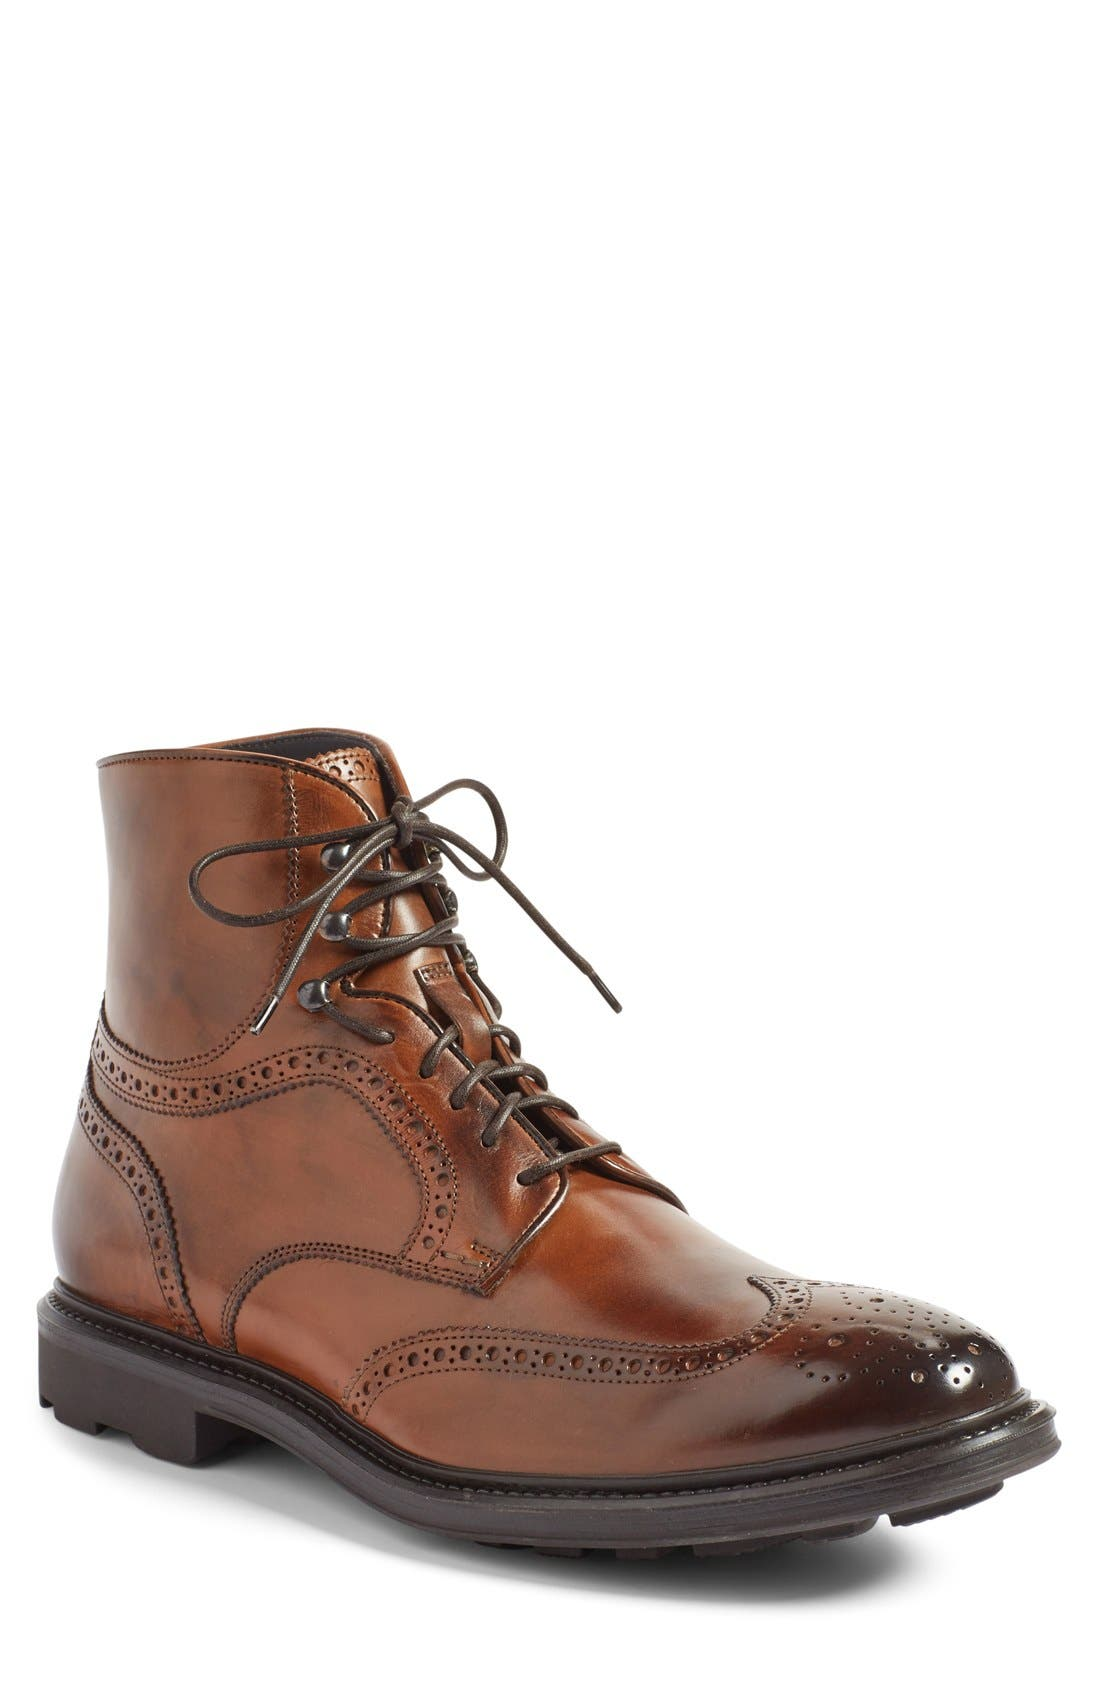 Alternate Image 1 Selected - To Boot New York 'Hobson' Wingtip Boot (Men)